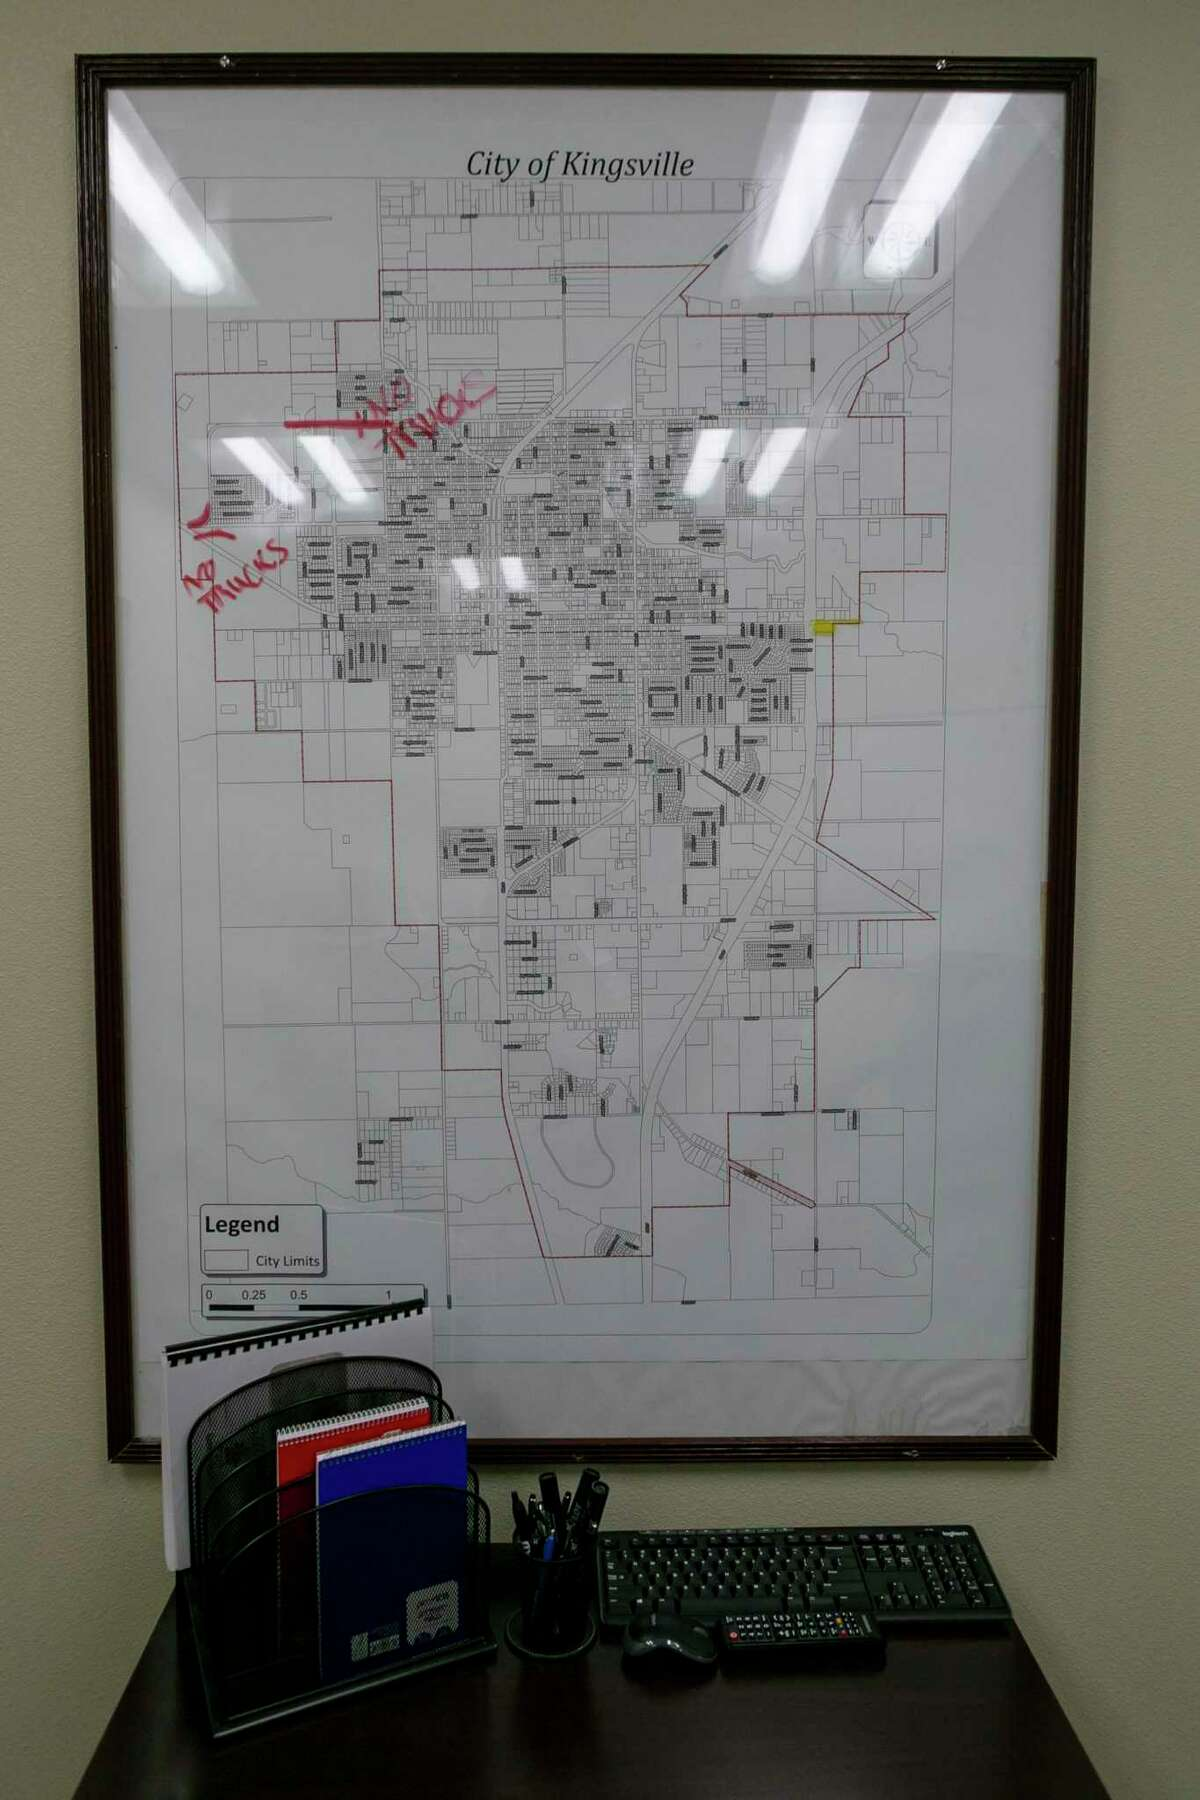 A map of the town hangs on the wall in the City of Kingsville office.